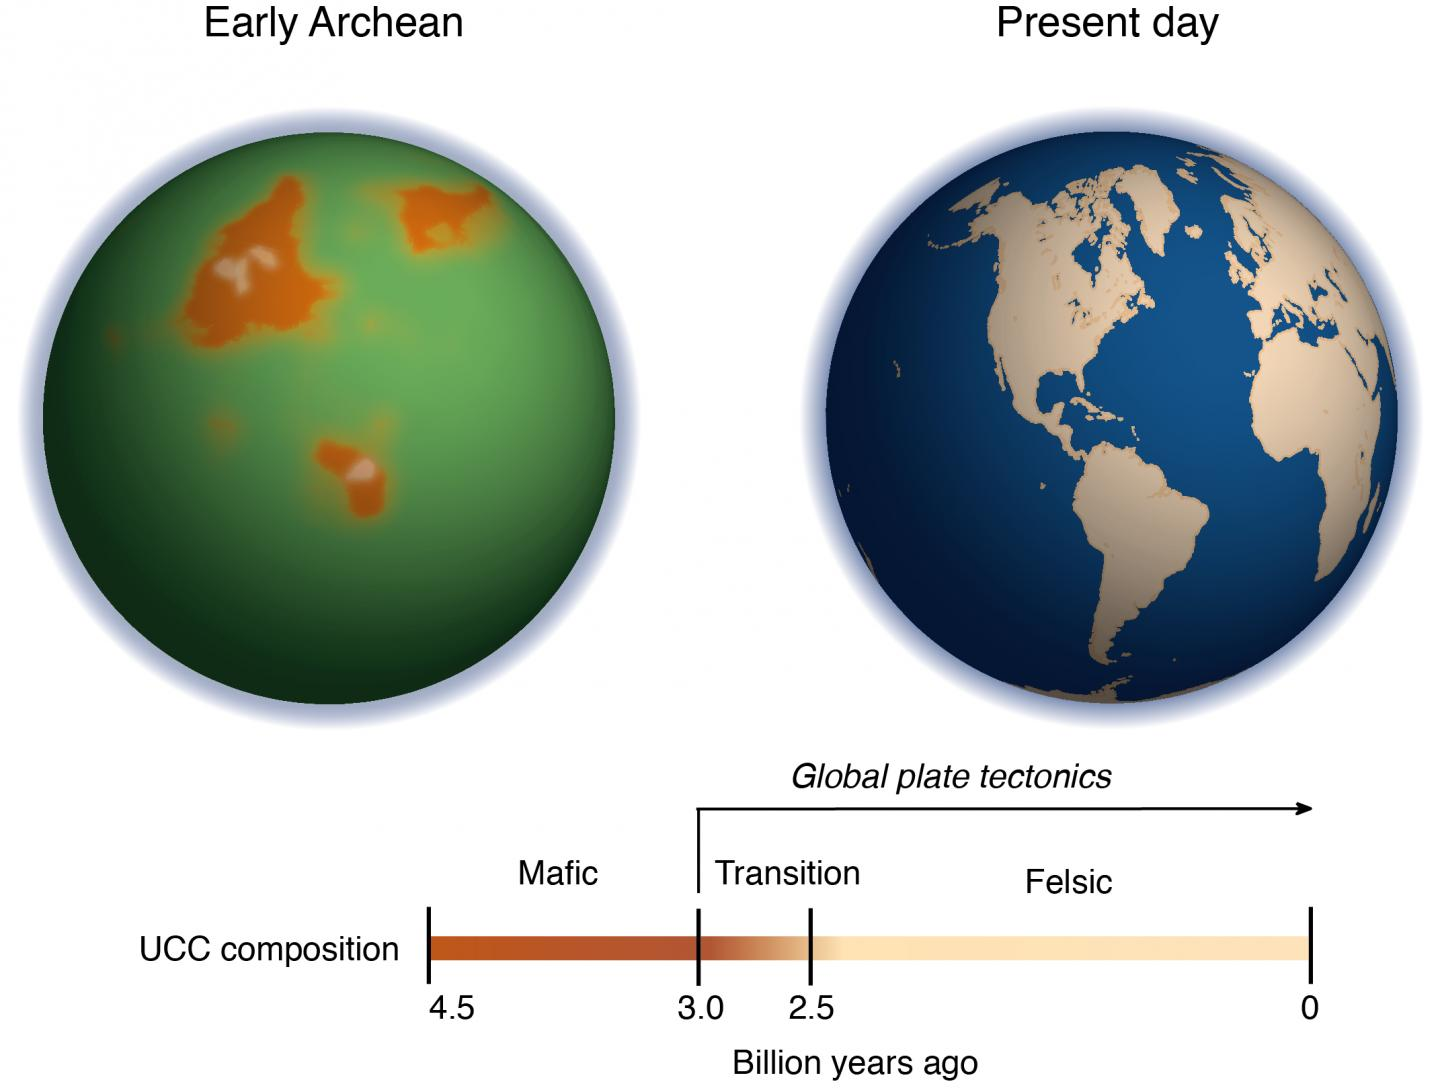 The image on the left depicts what Earth might have looked like more than 3 billion years ago in the early Archean. The orange shapes represent the magnesium-rich proto-continents before plate tectonics started, although it is impossible to determine their precise shapes and locations. The ocean appears green due to a high amount of iron ions in the water at that time. The timeline traces the transition from a magnesium- rich upper continental crust to a magnesium-poor upper continental crust. Credit: Ming Tang/University of Maryland Image credit: Ming Tang/University of Maryland